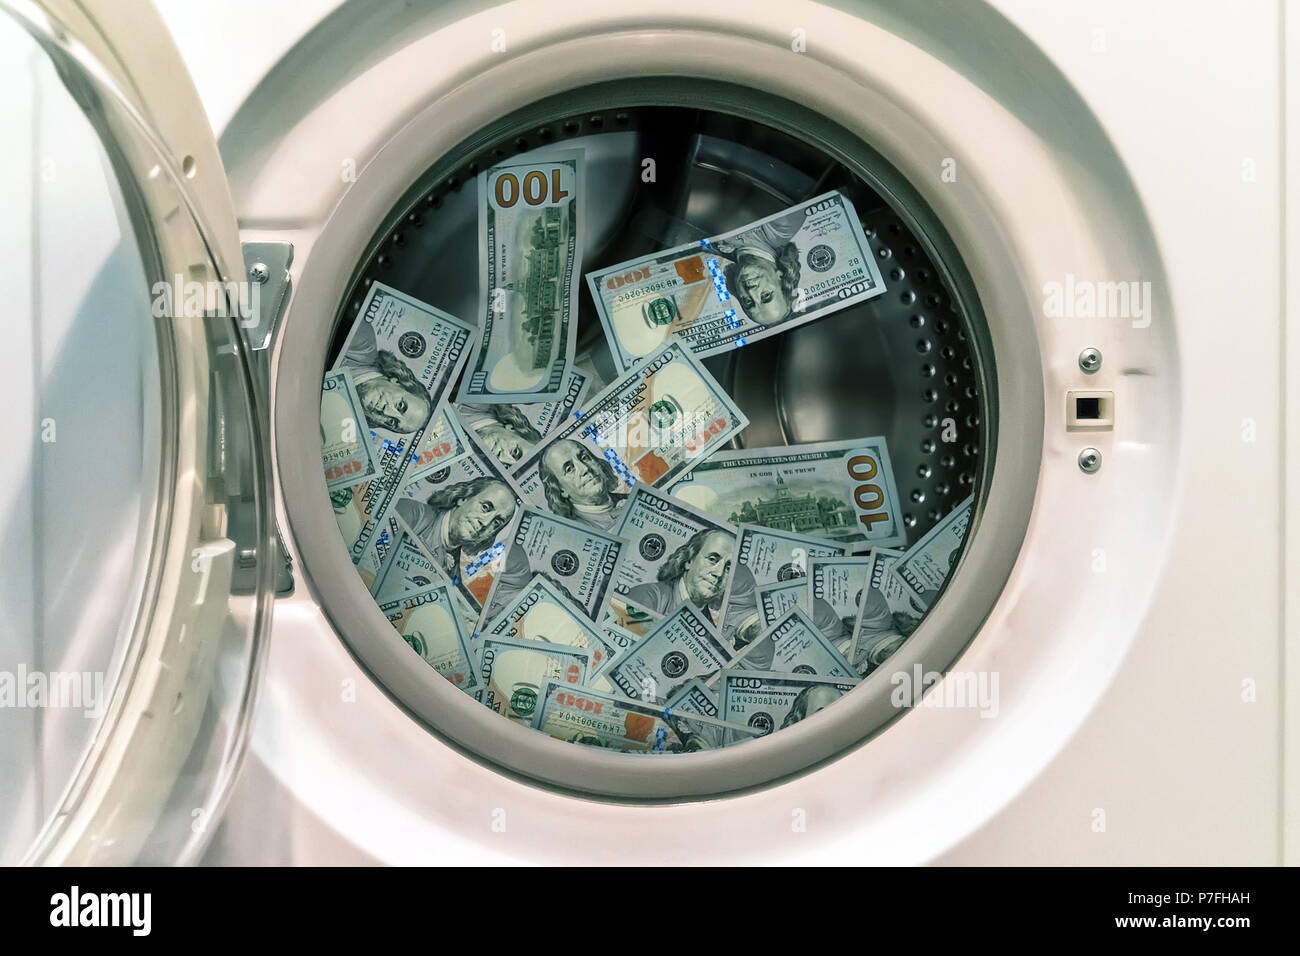 Close-up Of Pile Of Dirty Money Placed In Washing Machine. concept of laundering illegal money. launder money. black market - Stock Image